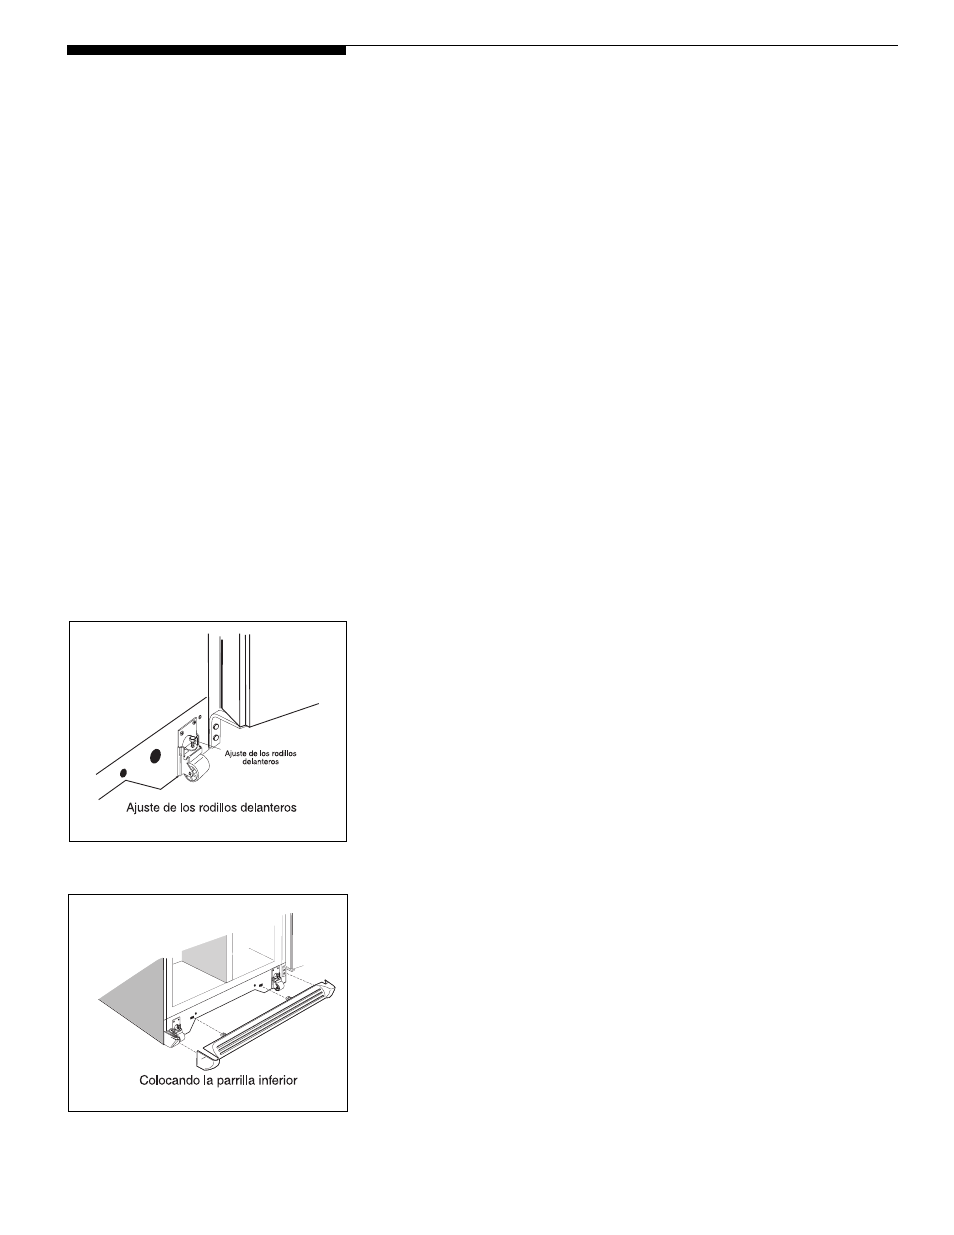 para comenzar white westinghouse 218954301 user manual page 24 rh manualsdir com westinghouse instruction manuals westinghouse user manual oven